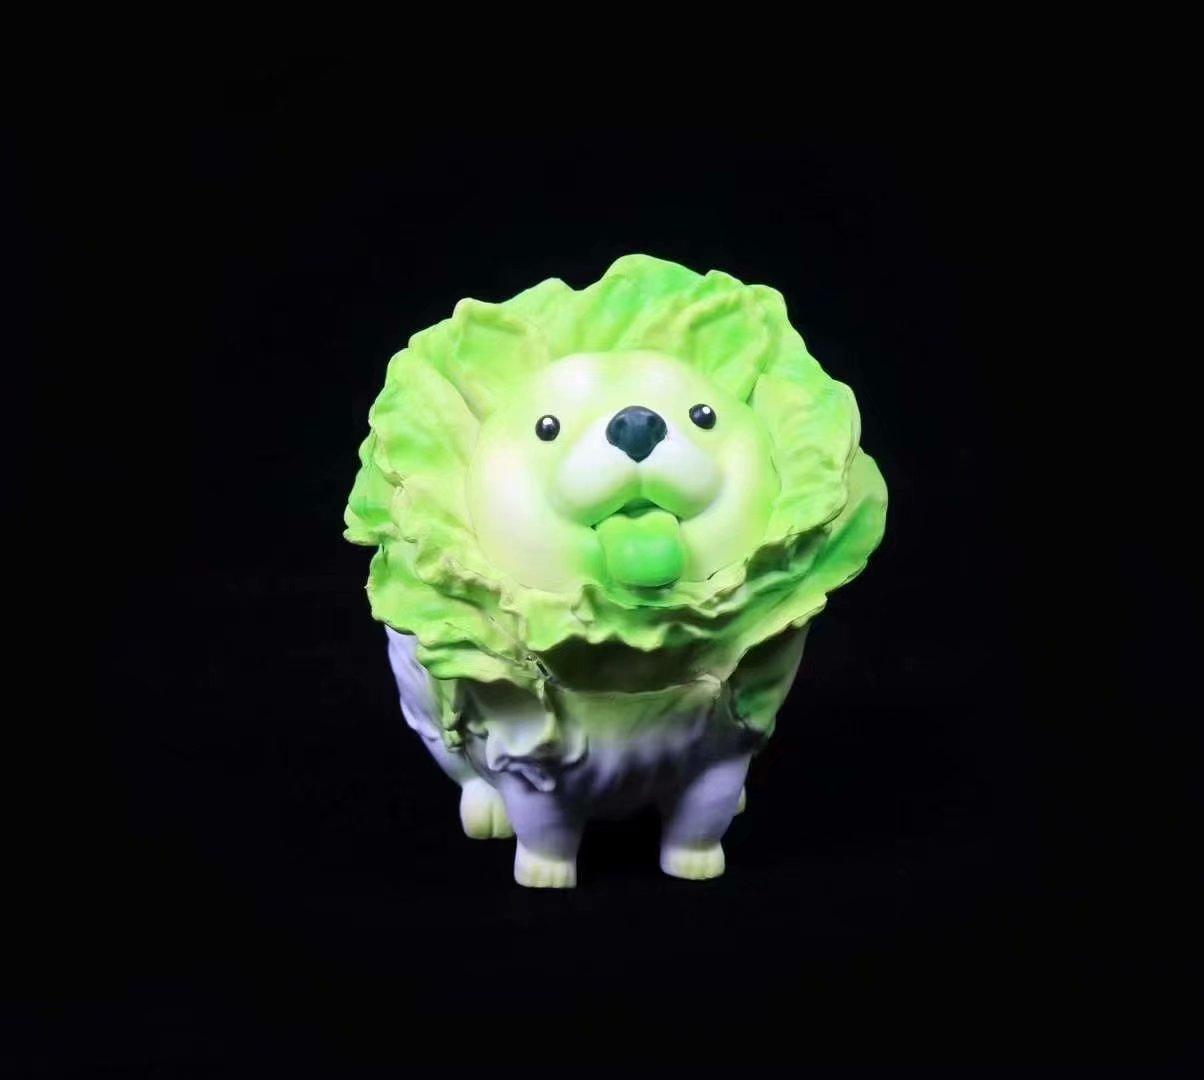 Cartoon Cabbage Dog Hand Office Nuoan Same Style Cabbage Dog Model Decoration Birthday Gift Souvenir Boxed